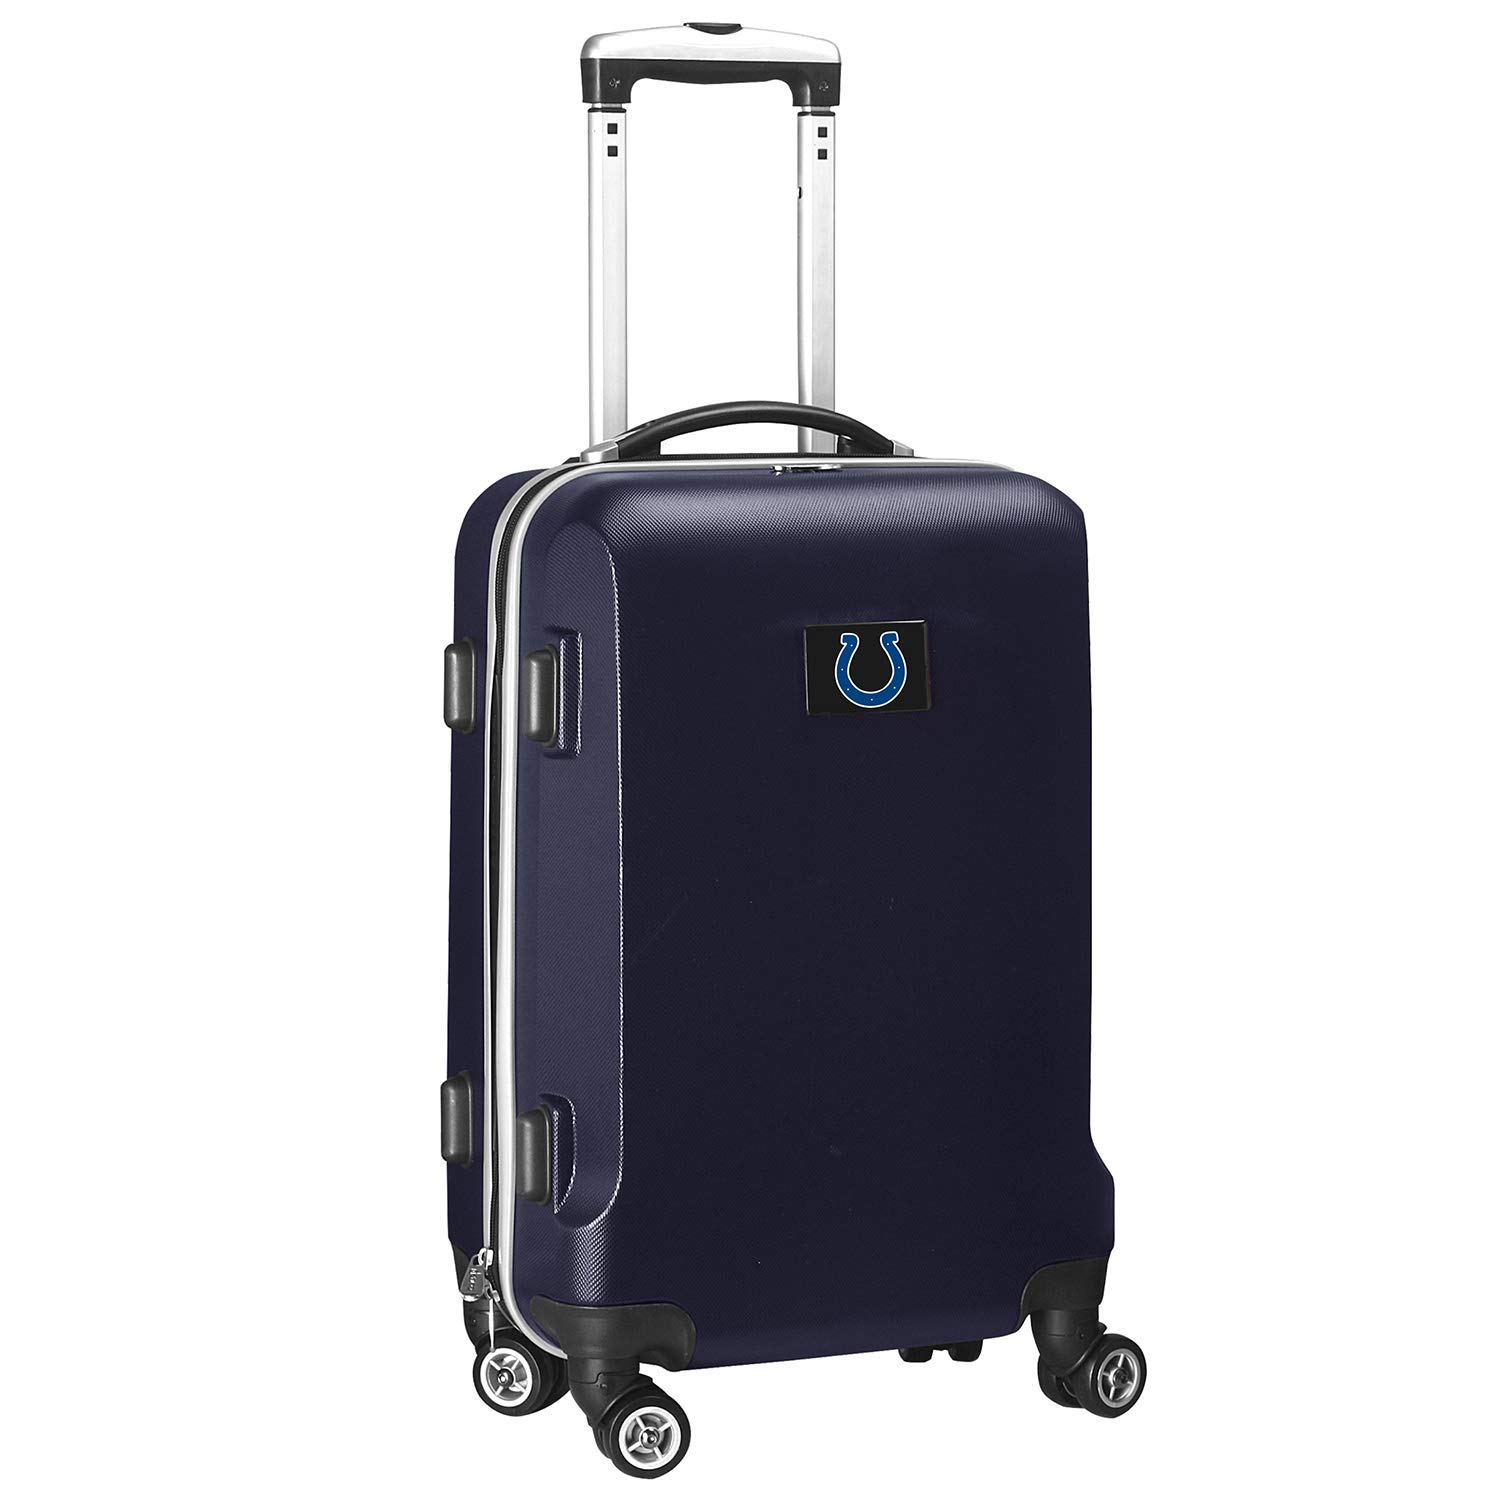 Denco NFL Indianapolis Colts Carry-On Hardcase Luggage Spinner, Navy by Denco (Image #1)